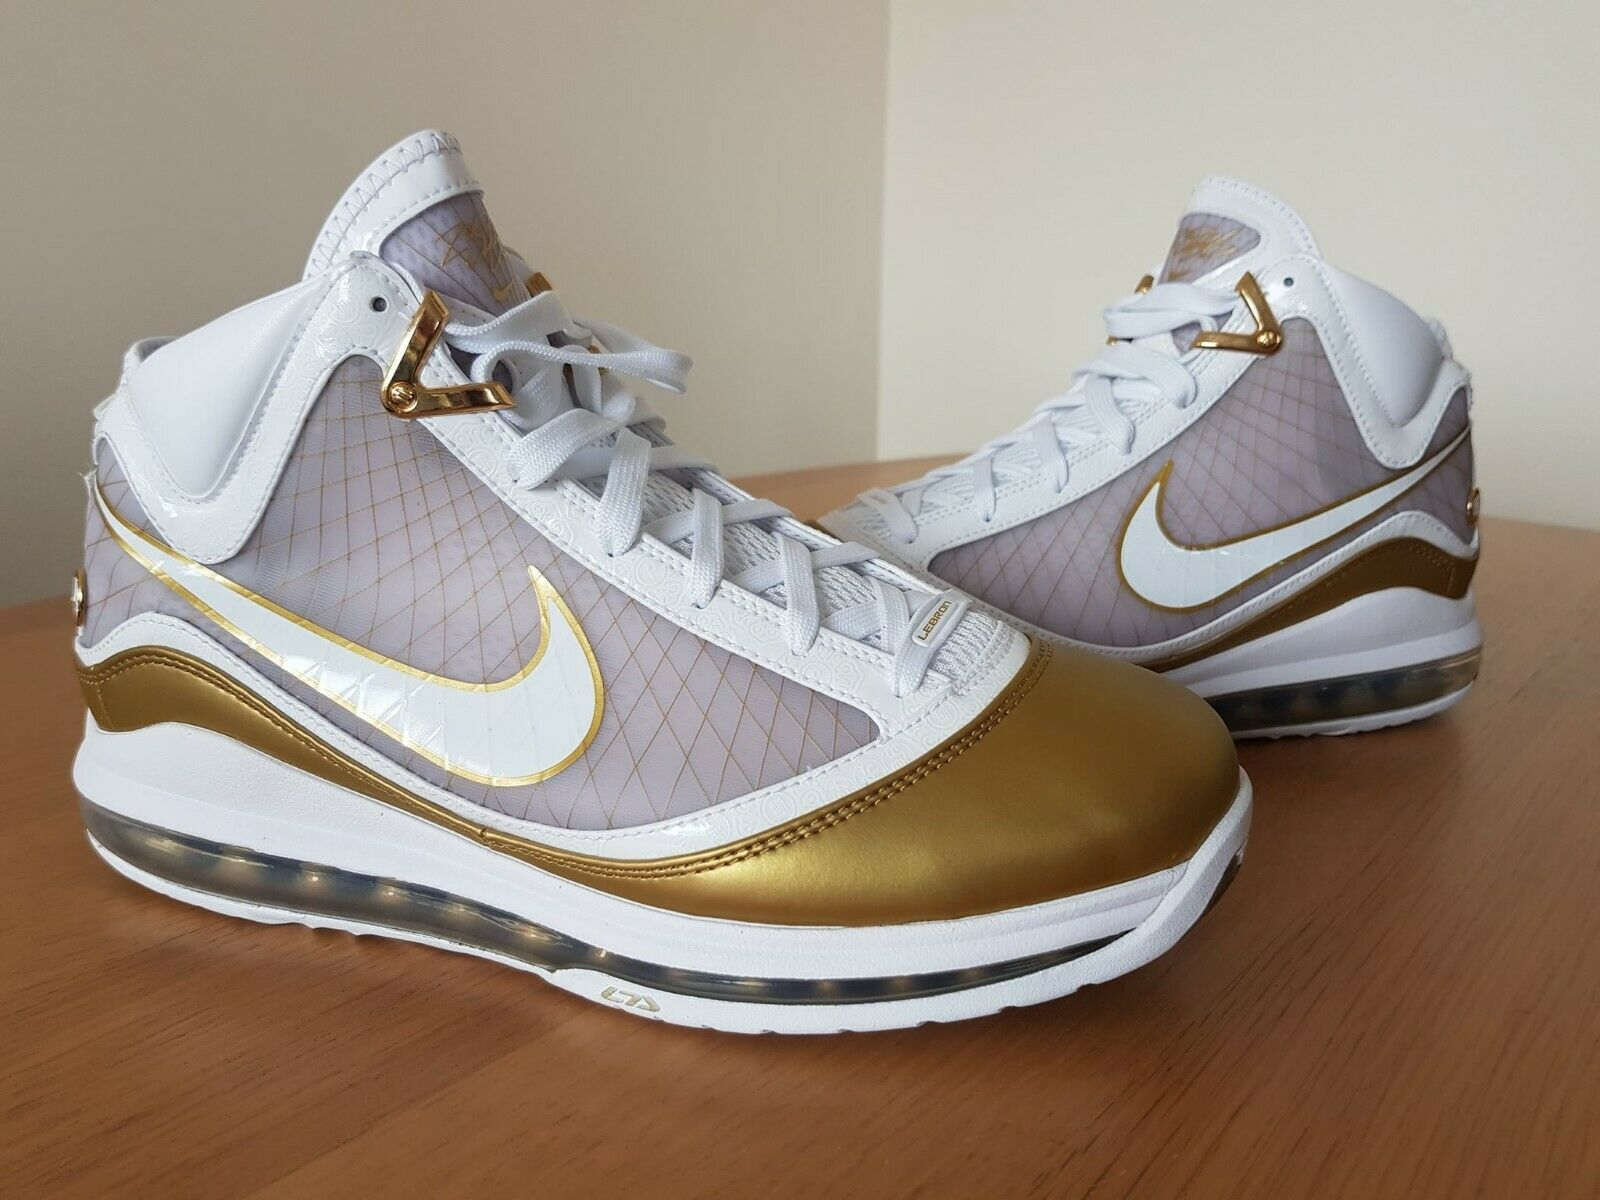 Nike LeBron 7 China Moon 2020